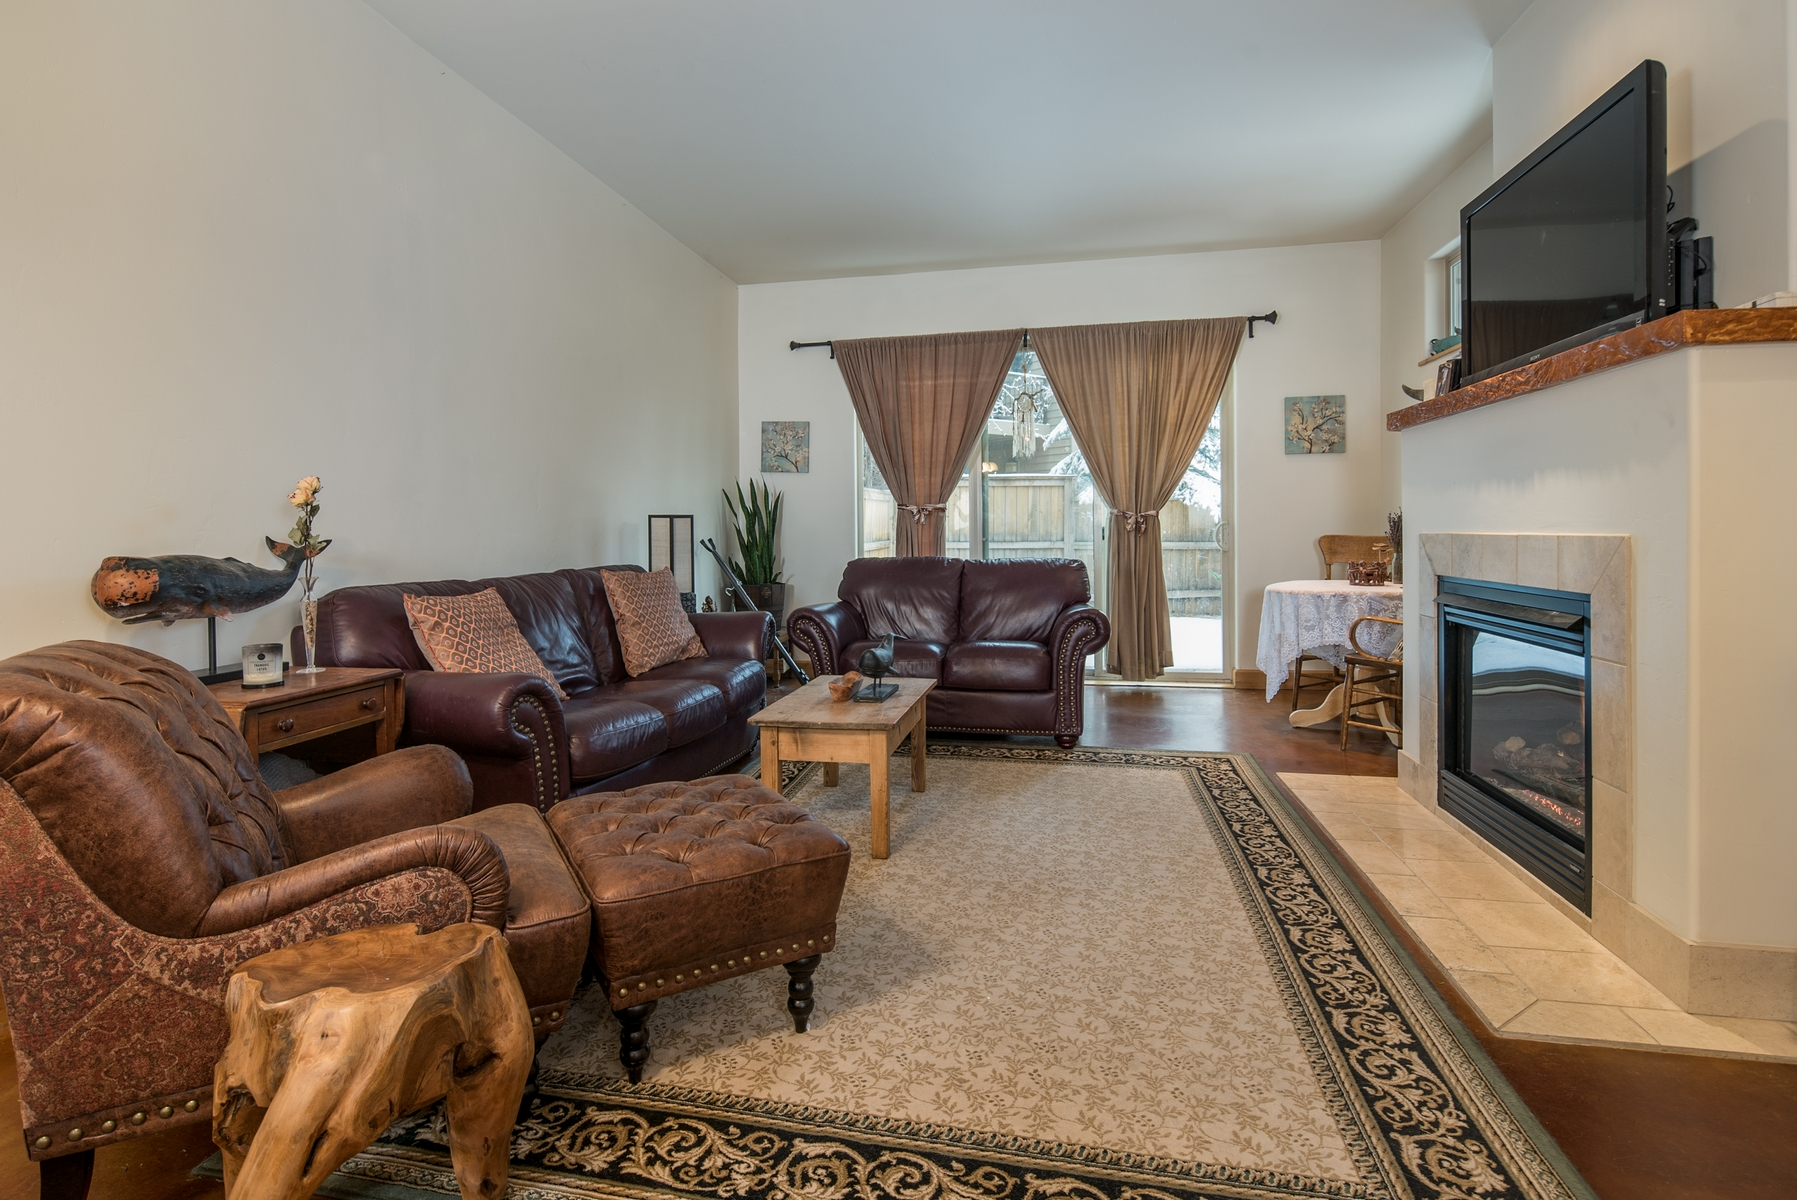 Condominium for Sale at Welcoming Warm Springs Townhouse 101 Four Seasons Way #1 Ketchum, Idaho 83340 United States